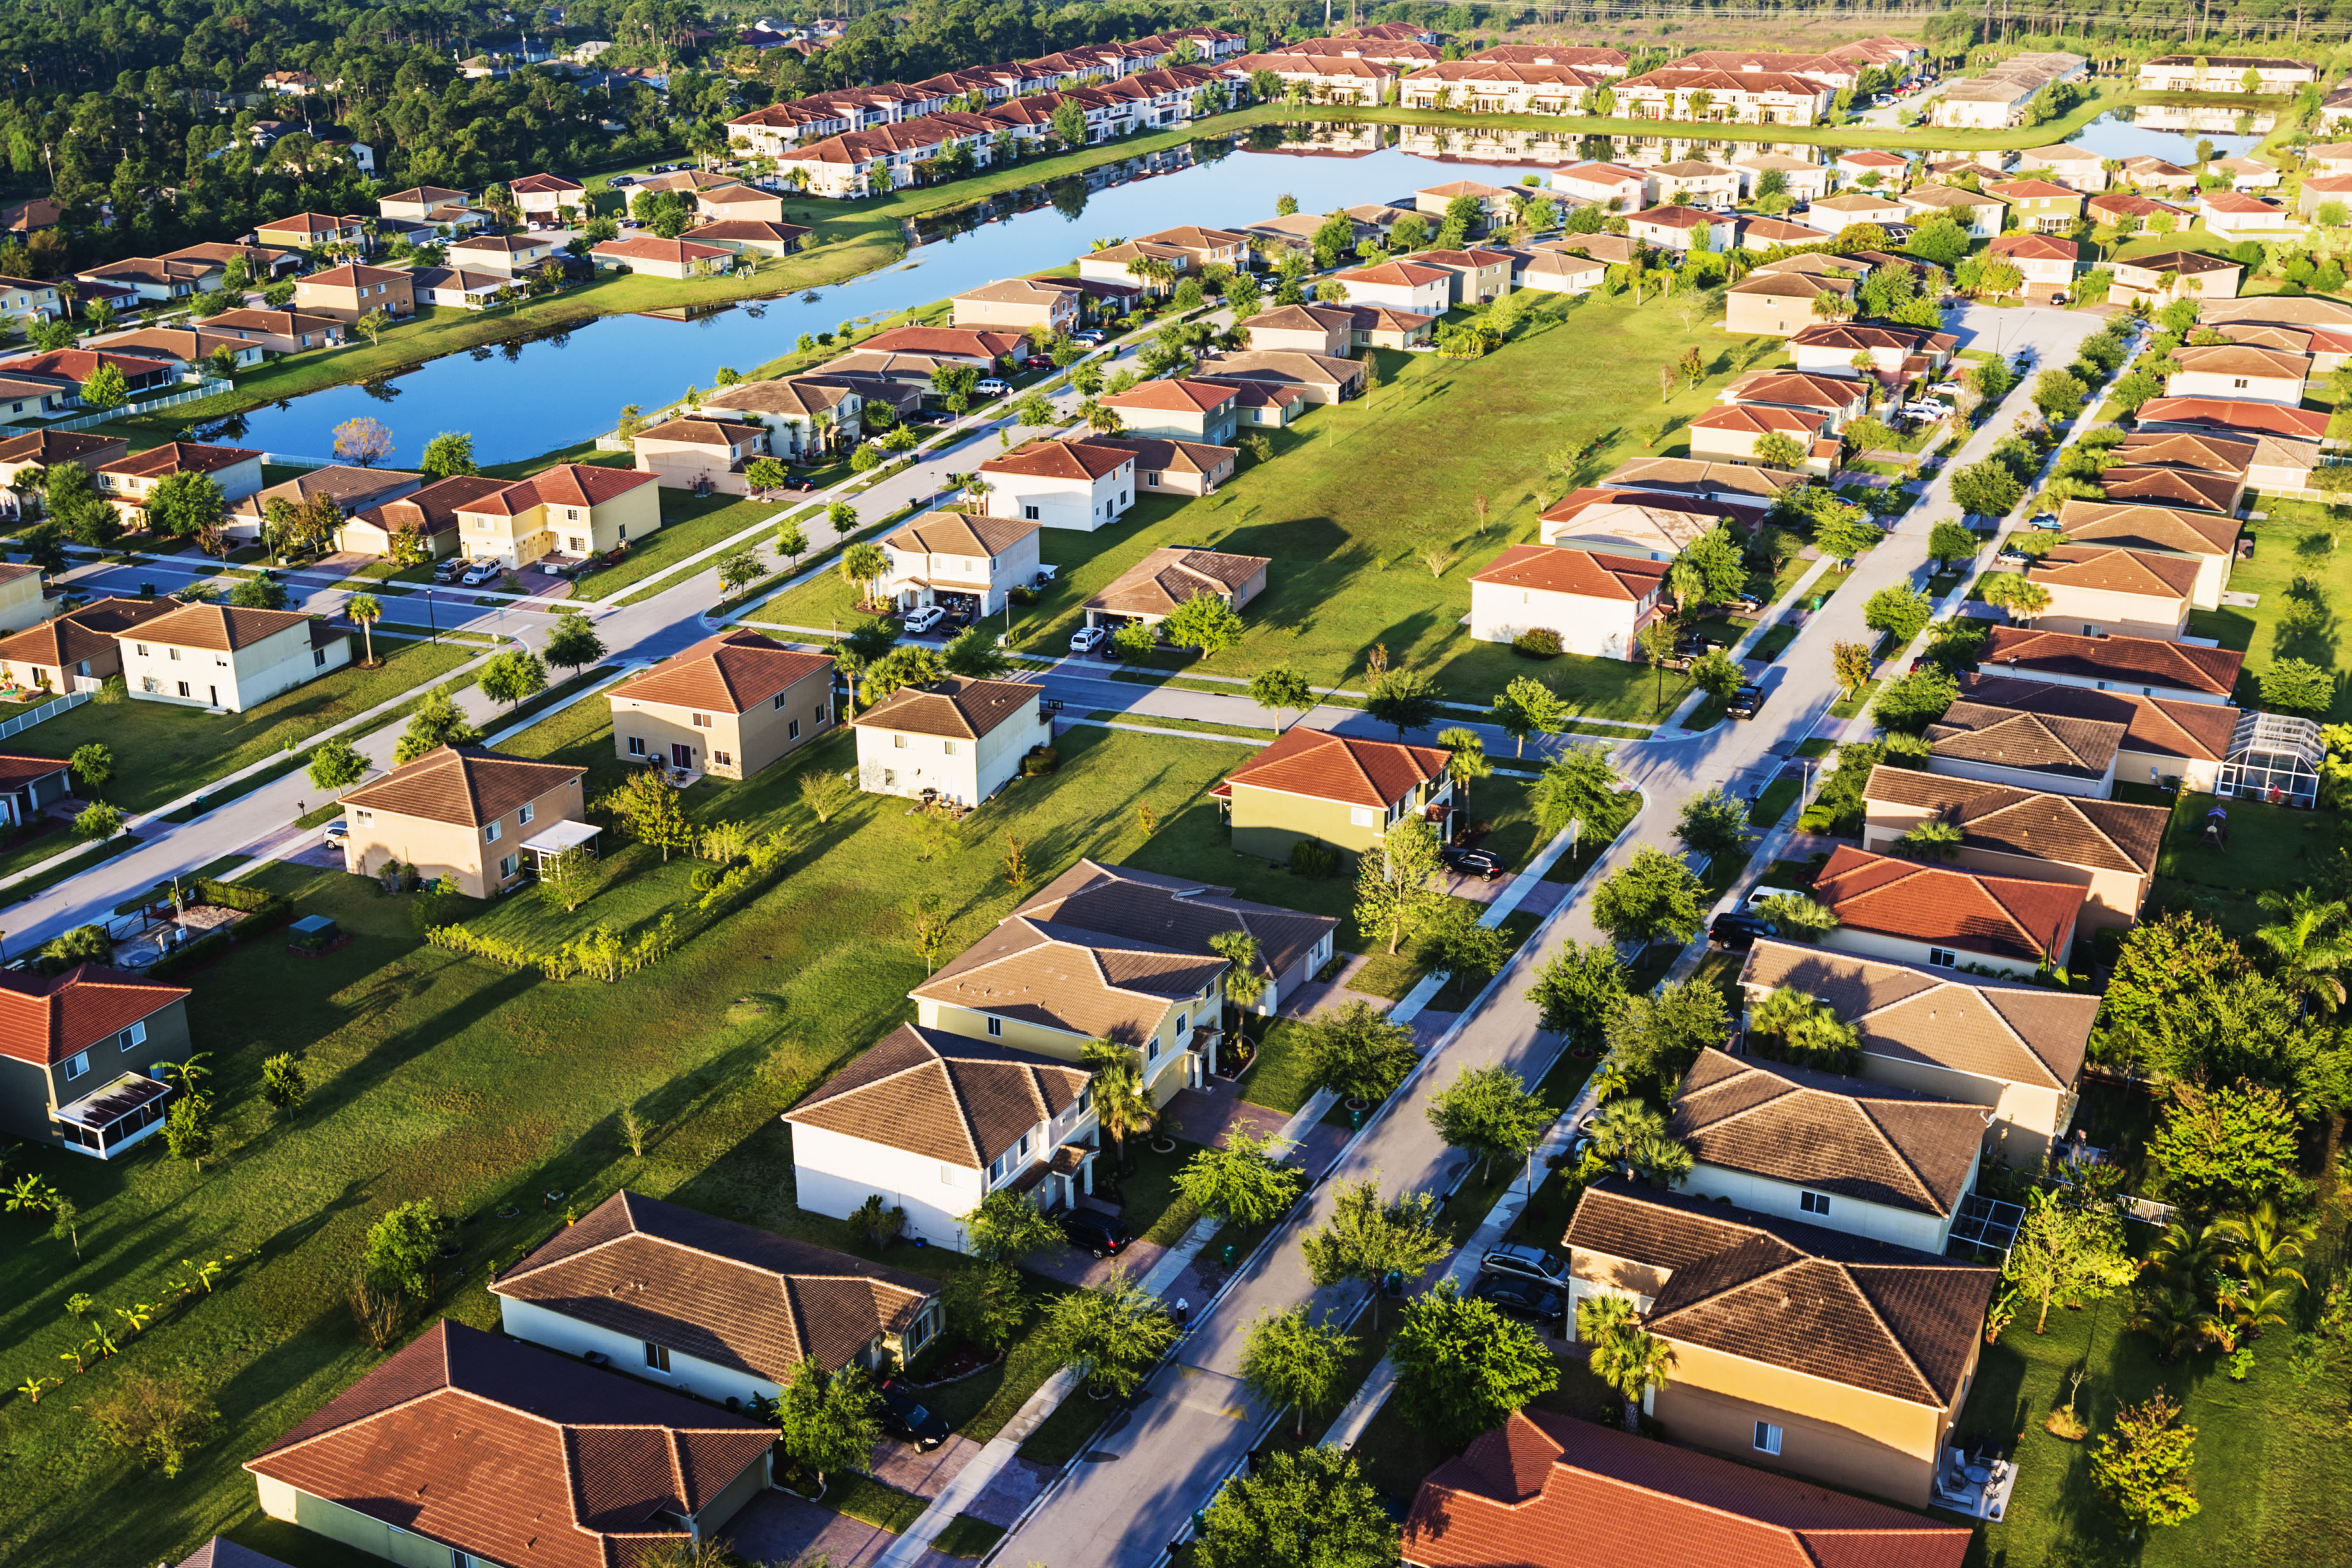 Used Cars In House Financing >> Suburbs Have Become a Haven for Renters | US News